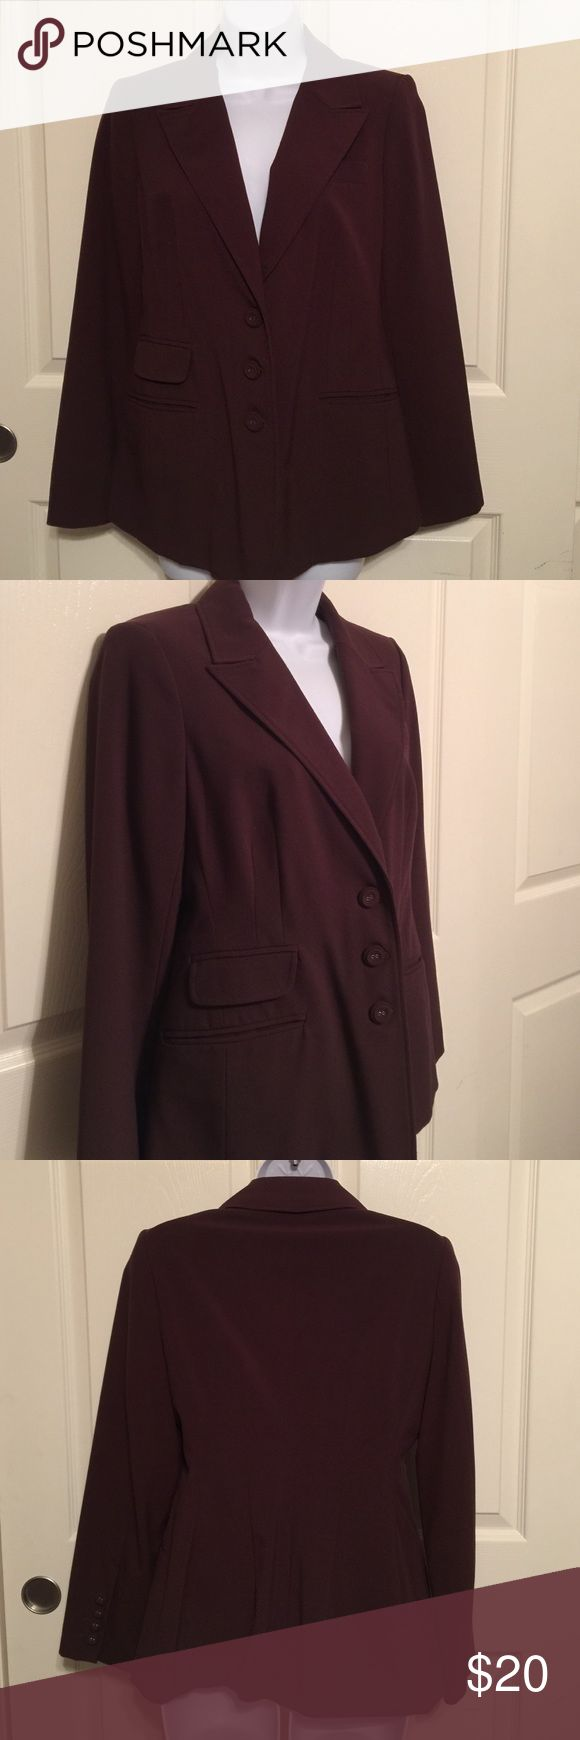 Brown woman's blazer size 6 ladies pre-owned Pre-owned woman's ladies brown blazer size 6.  Check out my other items, we have a lot of collectible, antiques, vintage, fashion jewelry, women's clothing, handbags, shoes, home decors, kitchen & more that you might be interested.  Let me know if you have any questions. Thank you & Have a Great Day!!! FREE GIFT with every purchase!!! Jackets & Coats Blazers